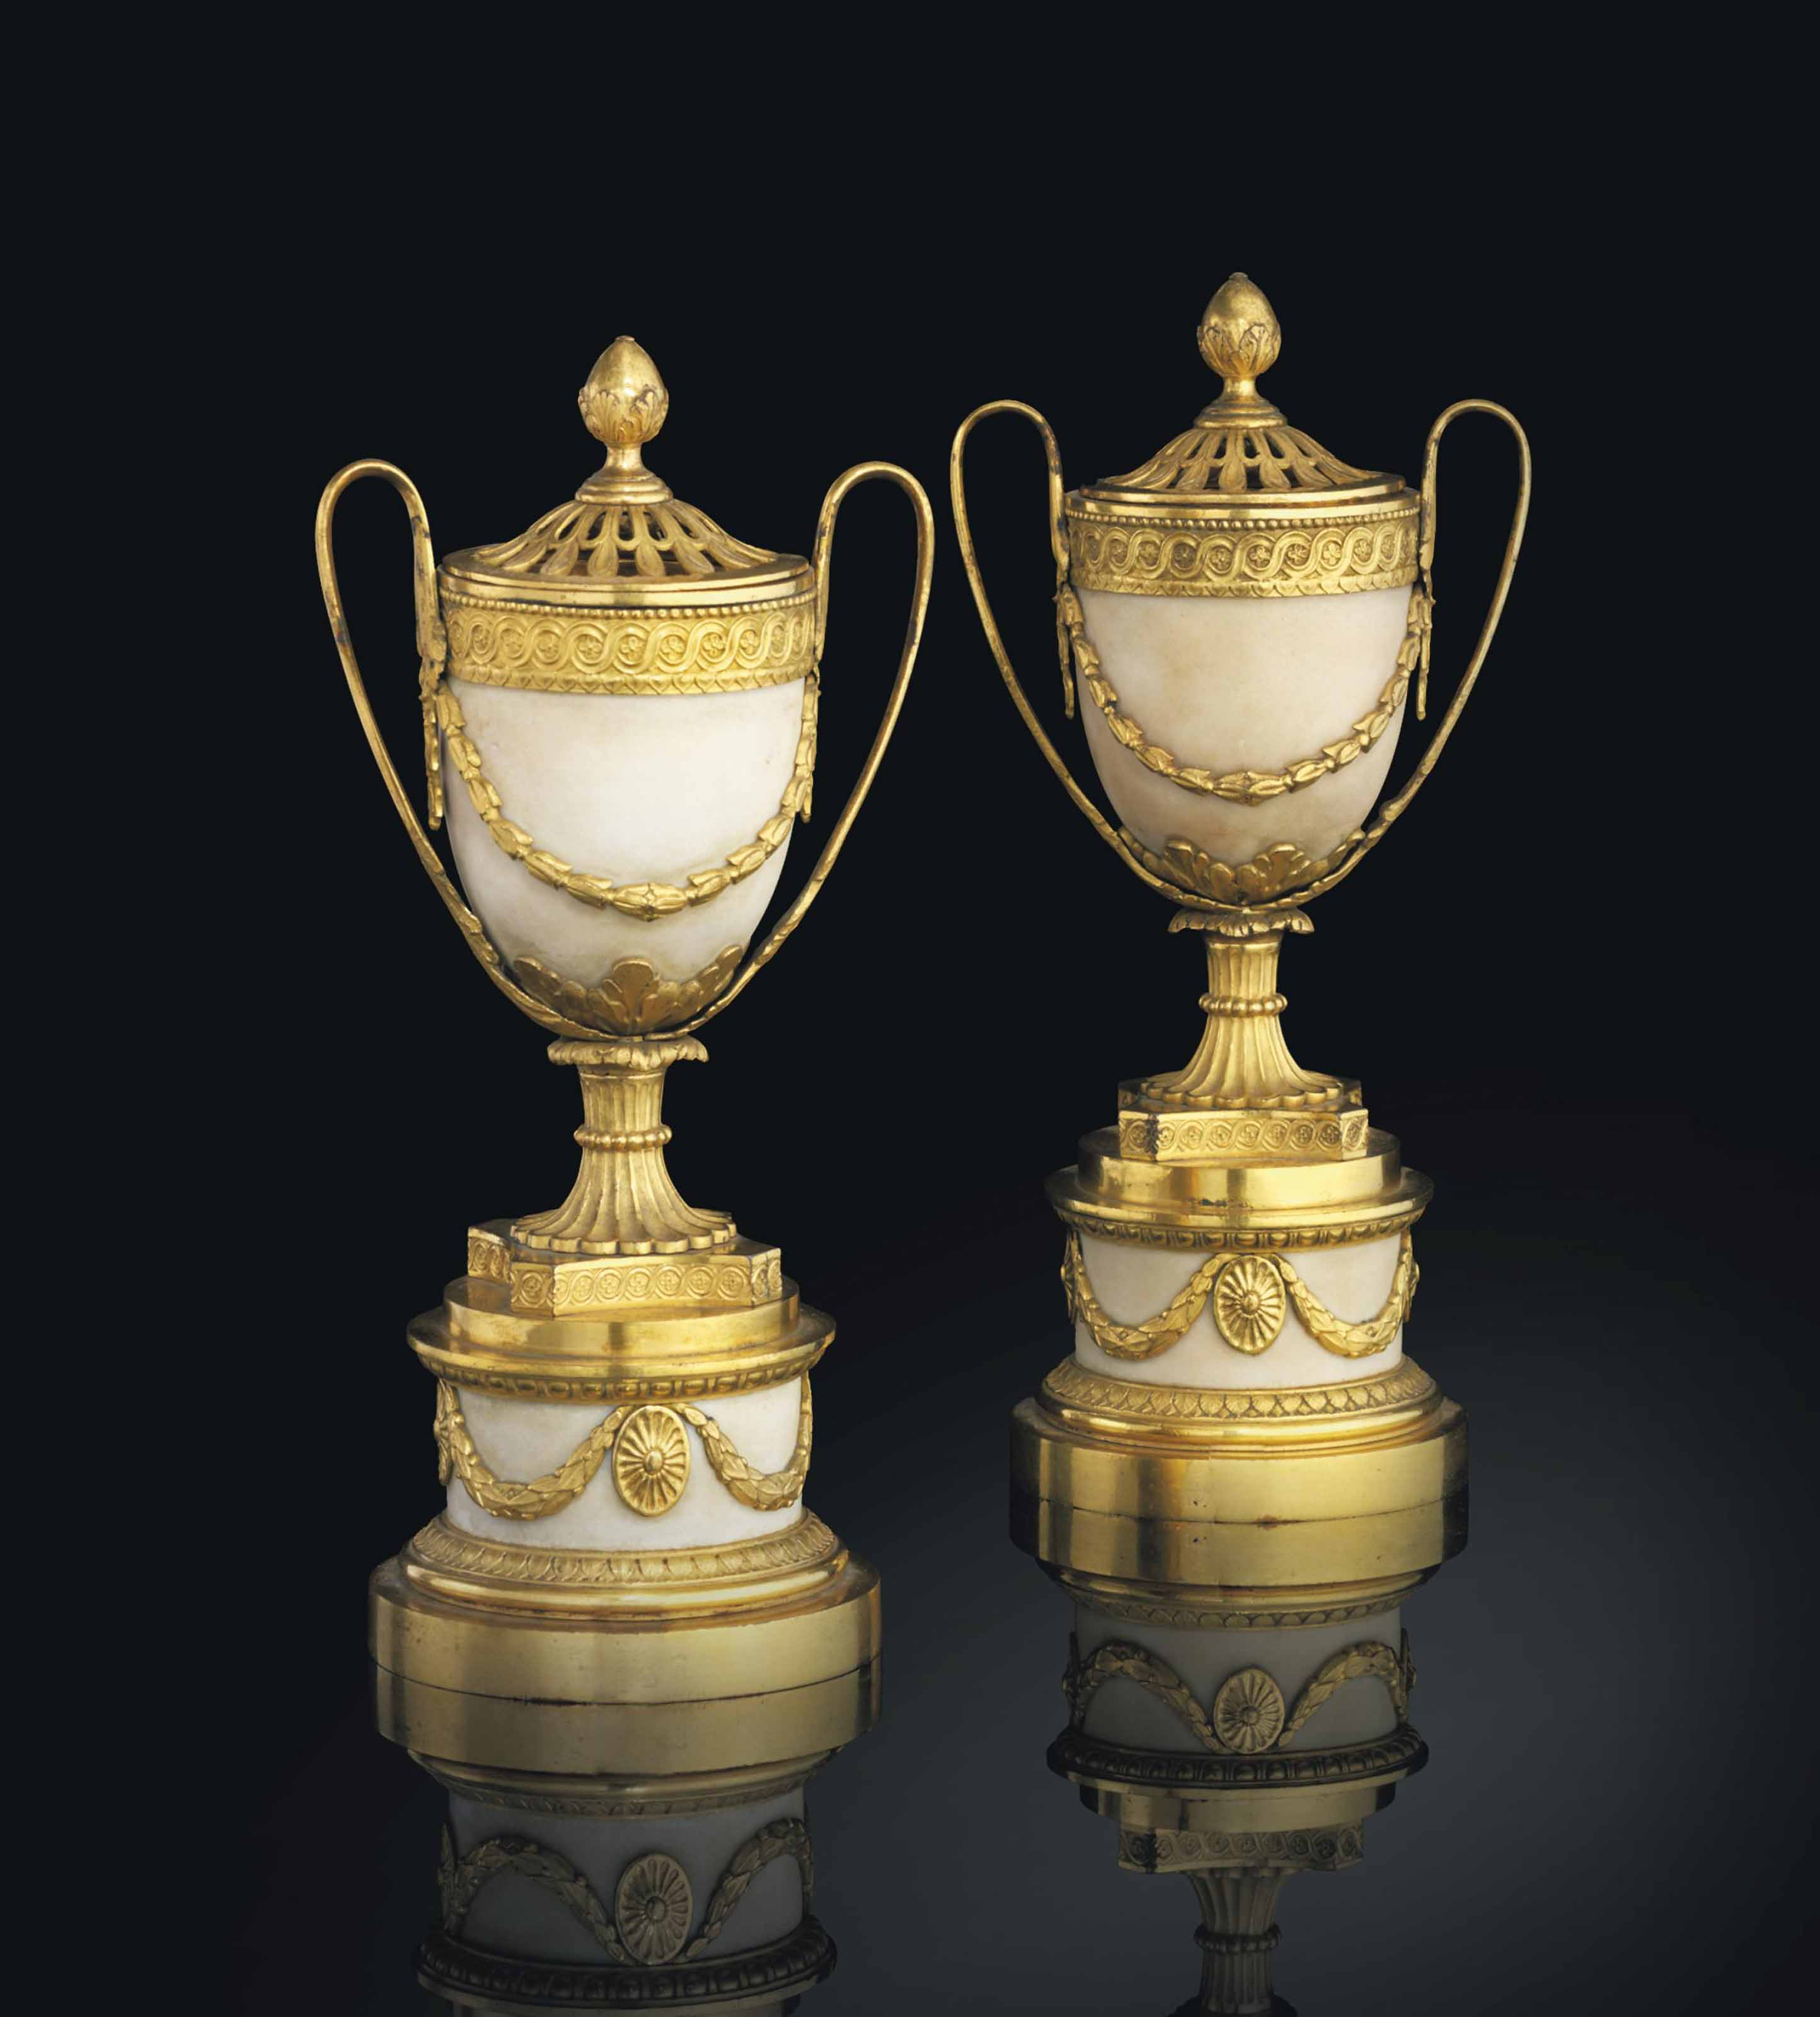 A PAIR OF GEORGE III ORMOLU-MOUNTED WHITE MARBLE POT-POURRI VASES AND COVERS